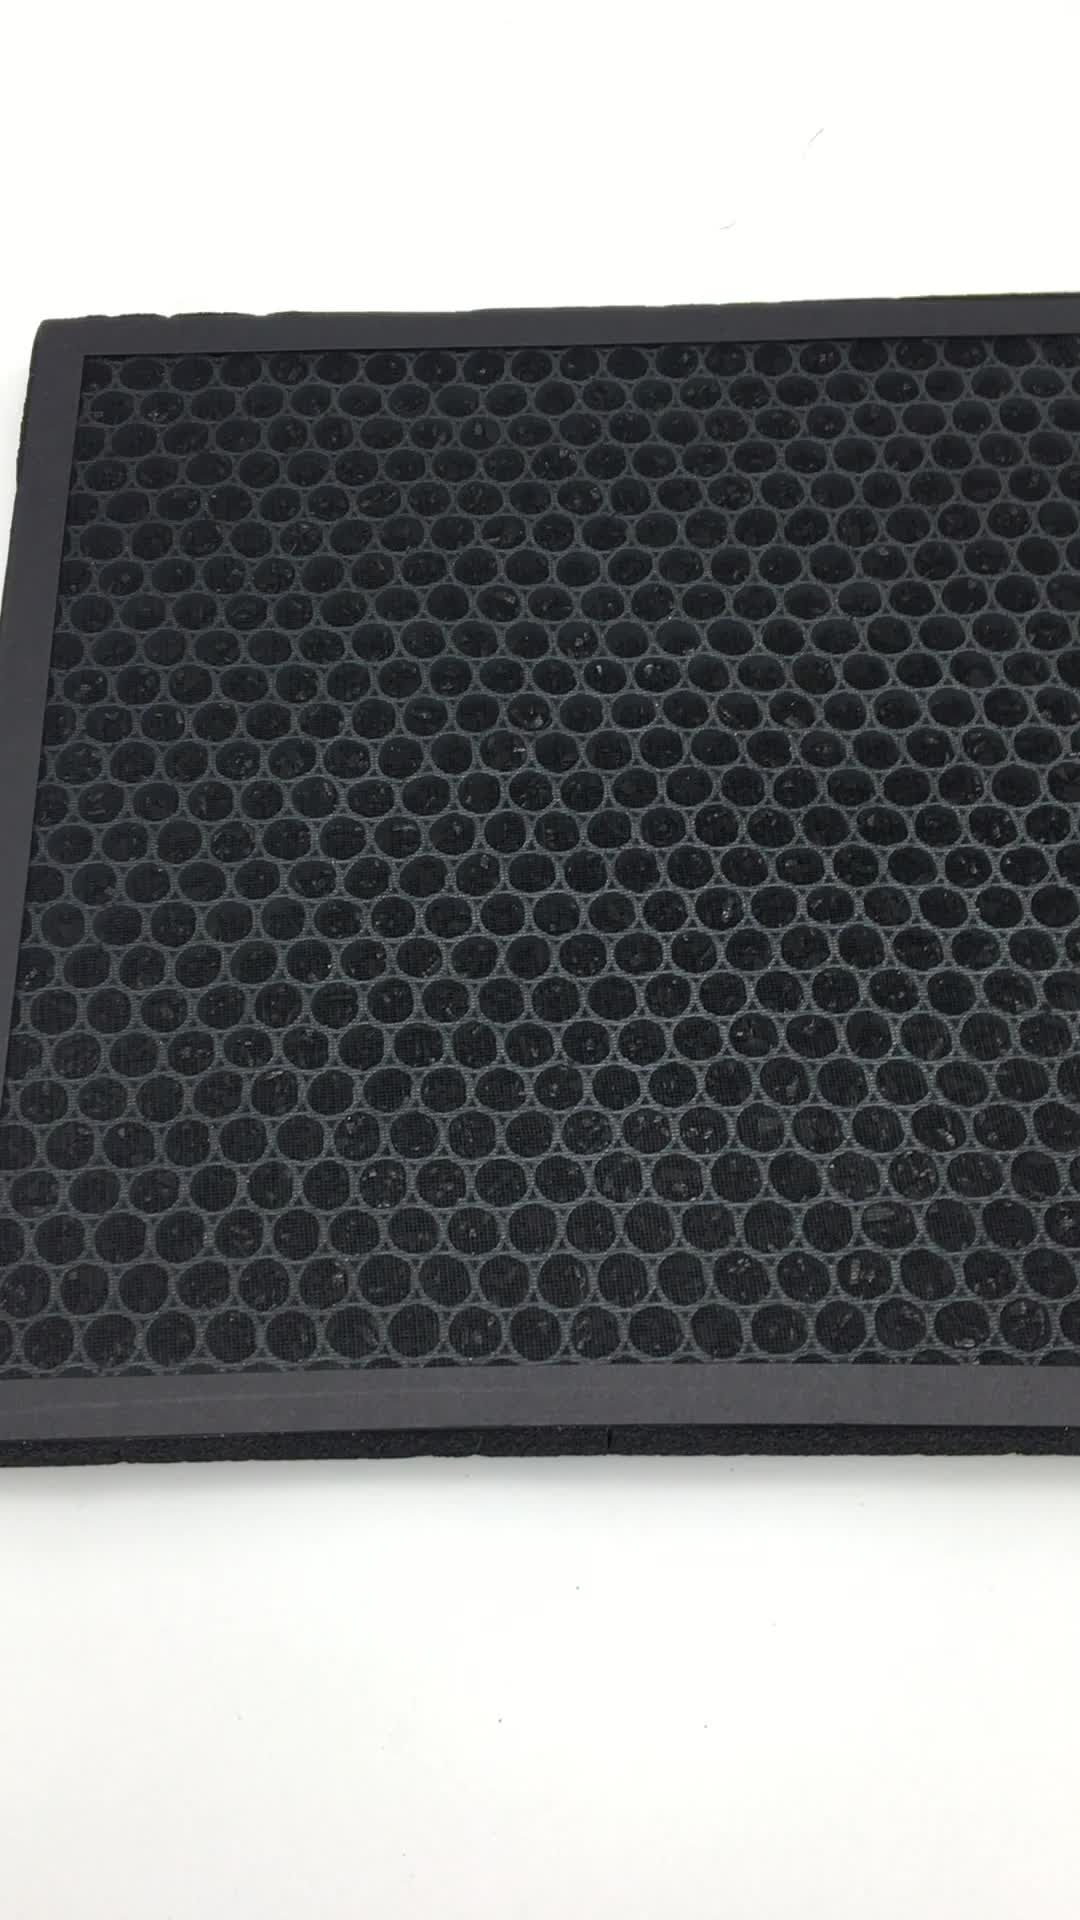 honeycomb activated carbon HEPA filter for home air purifier